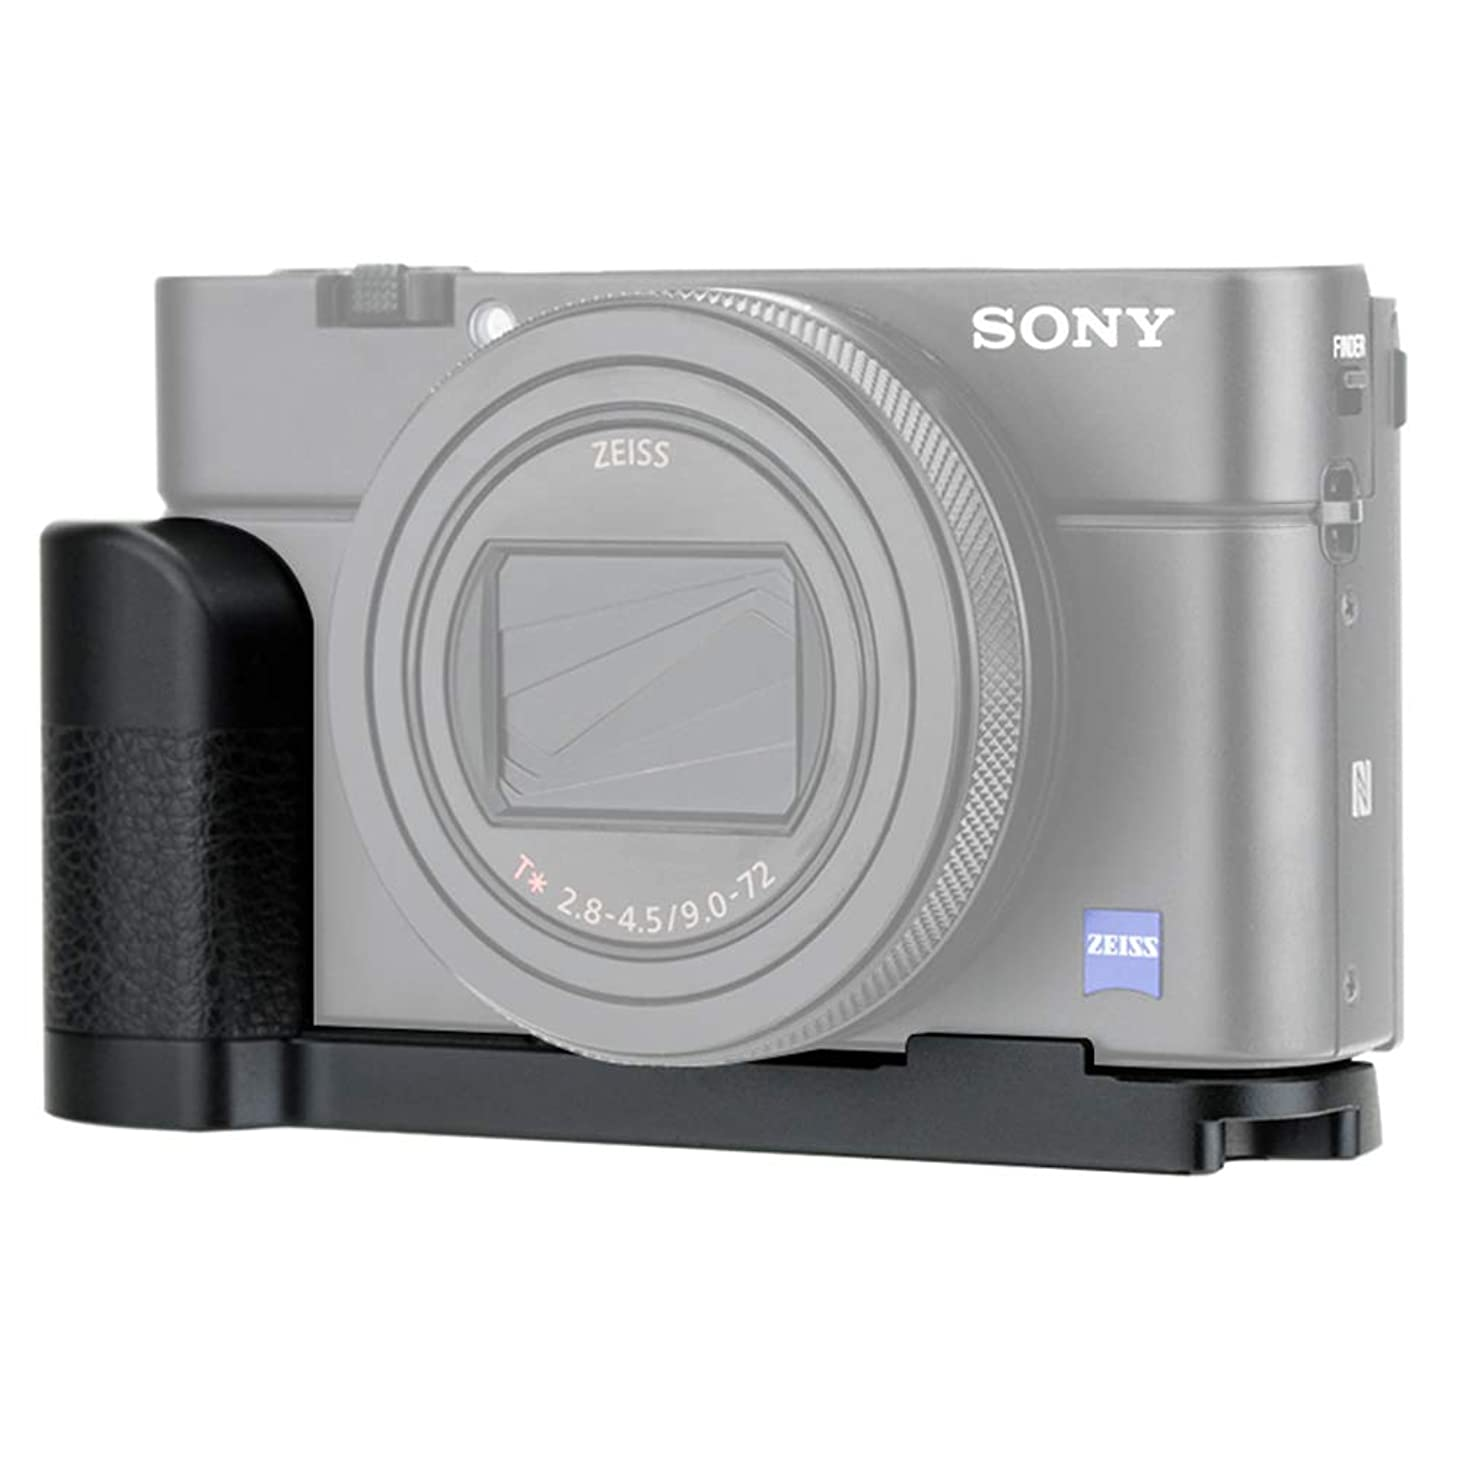 JJC Solid Metal Hand Grip Secure Handle for Sony RX100 VI RX100 VA RX100 V RX100 IV RX100 III RX100 II RX100 RX100M6 RX100M5A RX100M5 RX100M4 RX100M3 RX100M2 Digital Cameras